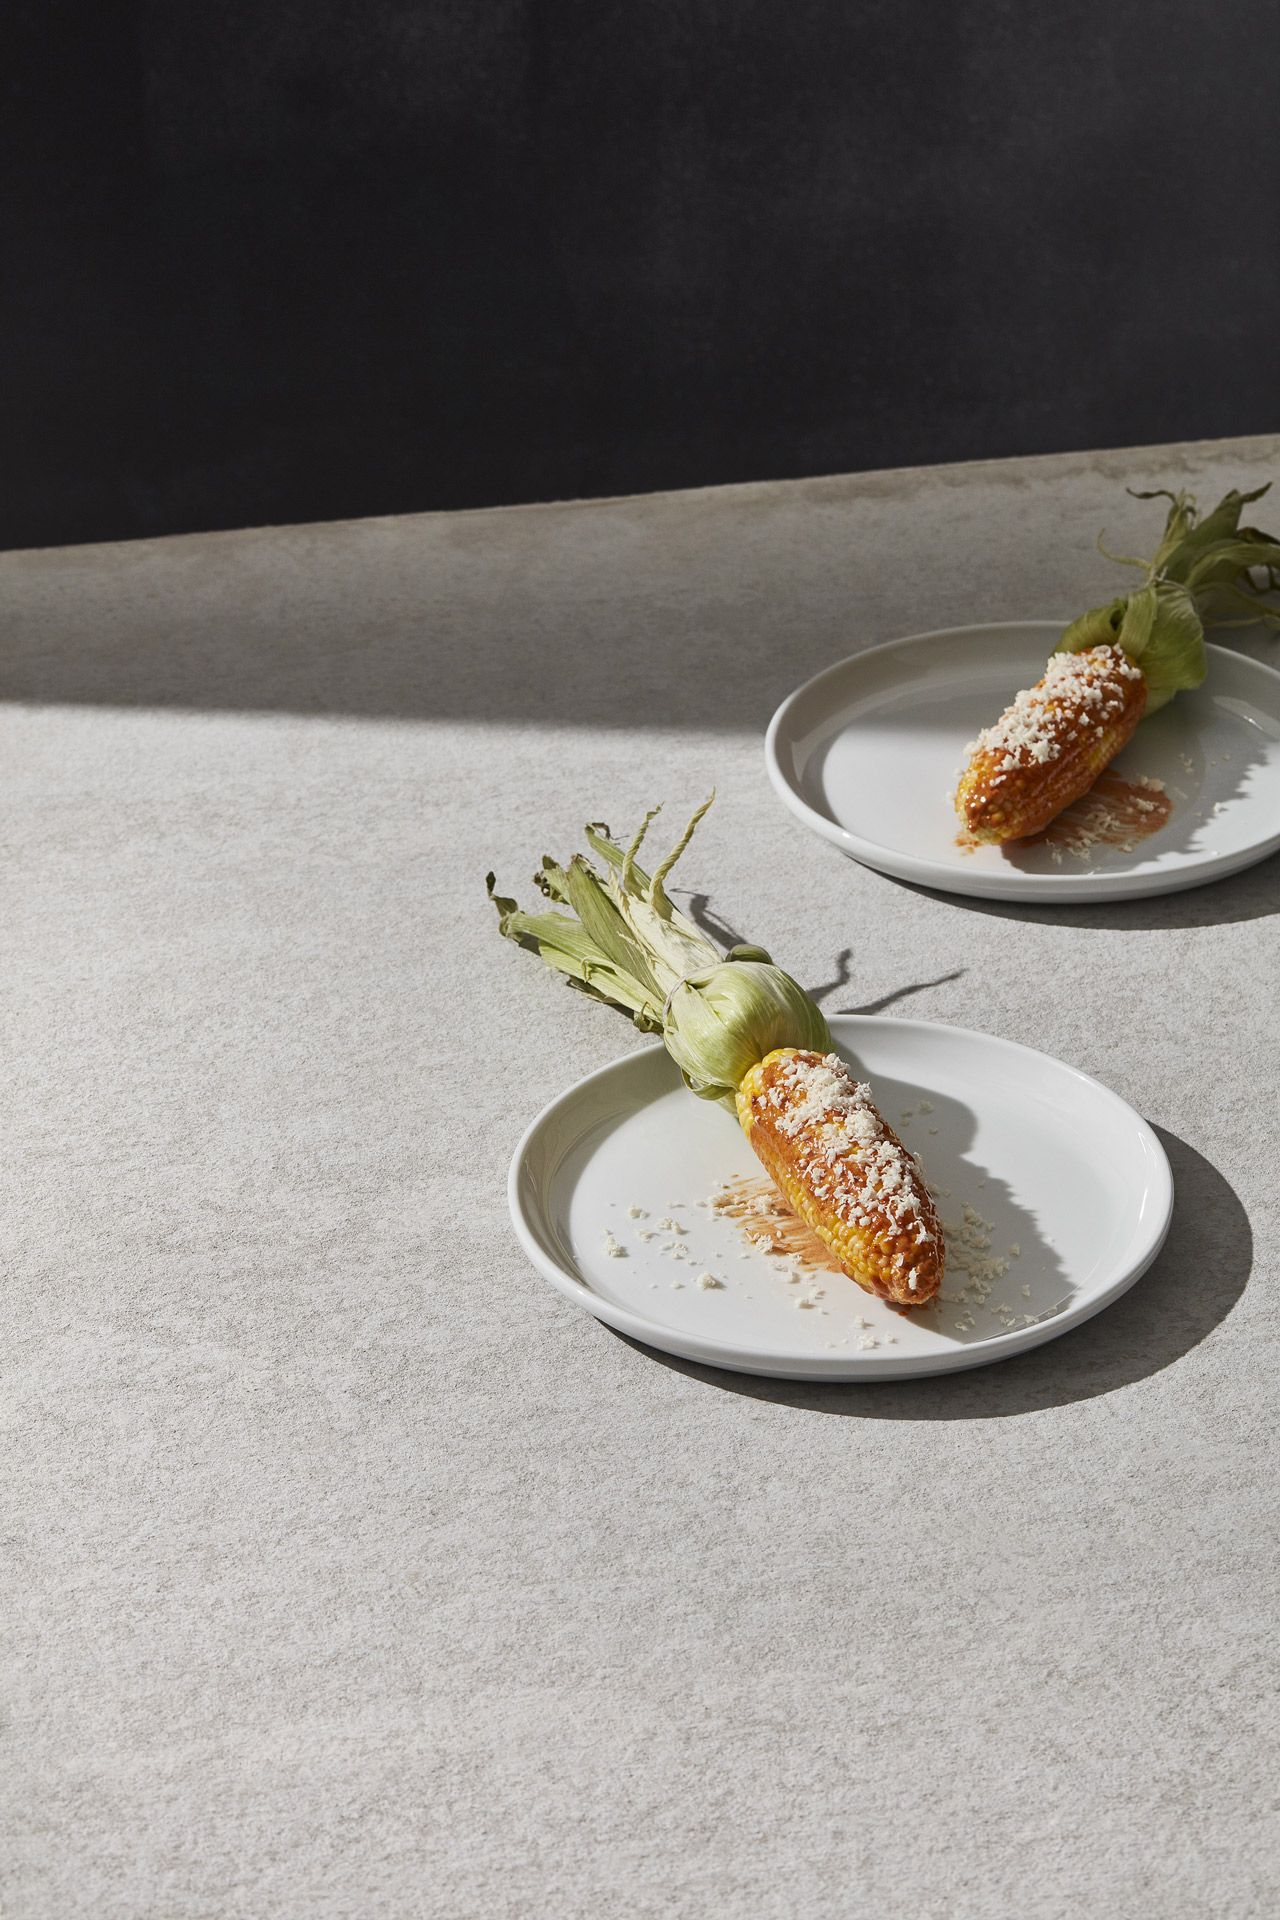 On a concrete table there are two white plates with cooked corn presented with sauce and grated cheese.